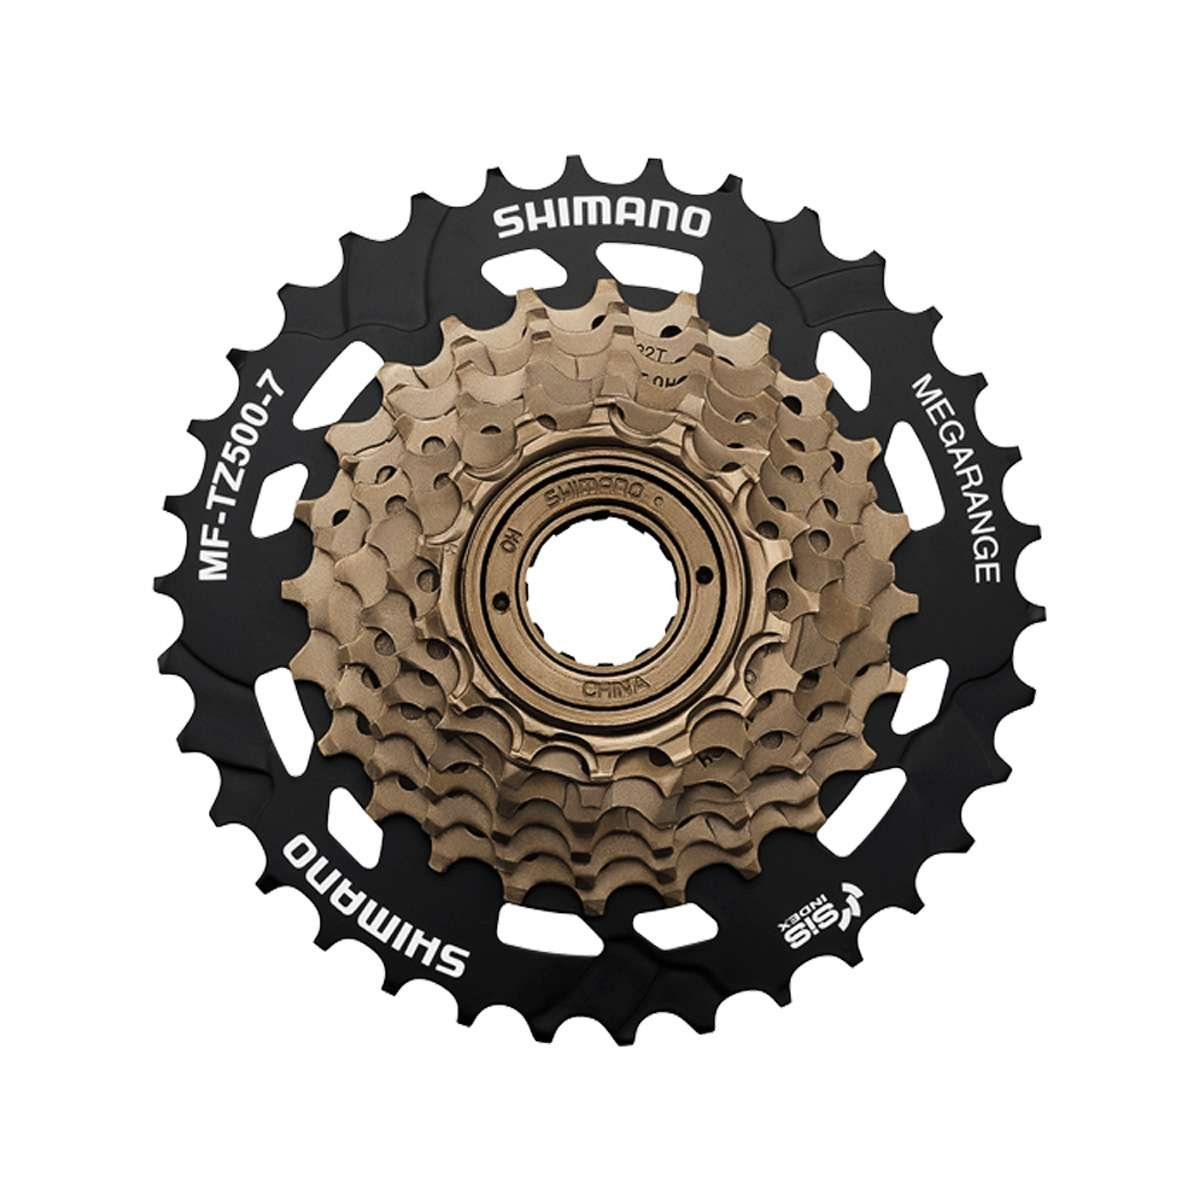 Shimano tz500 7-speed 14 – 34t Freewheel B074JGTWNL